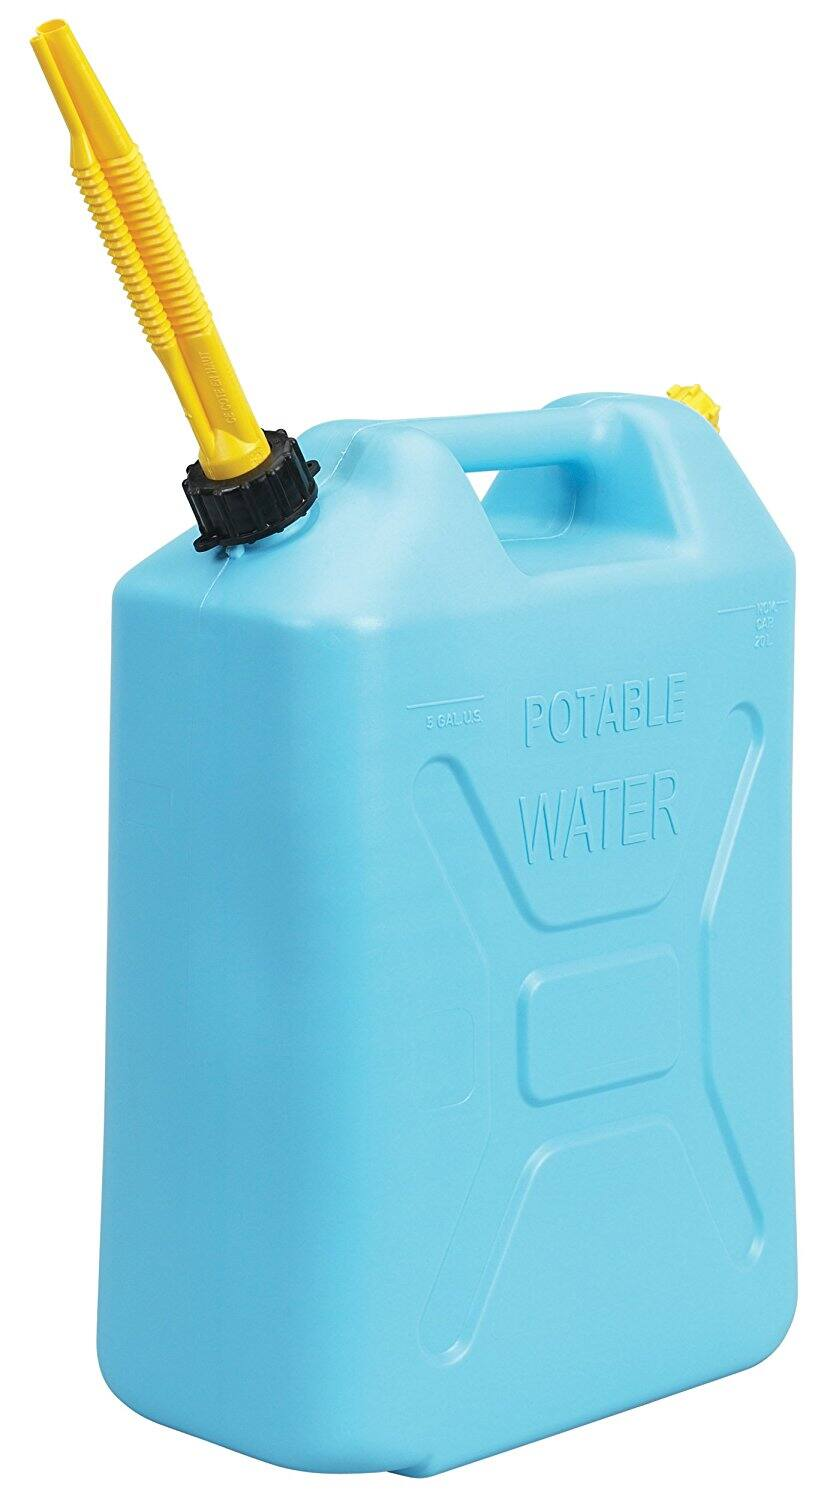 Emergency Water Storage - 5 Gallon Water for Container on Sale $13.59 - Free Shipping at $50